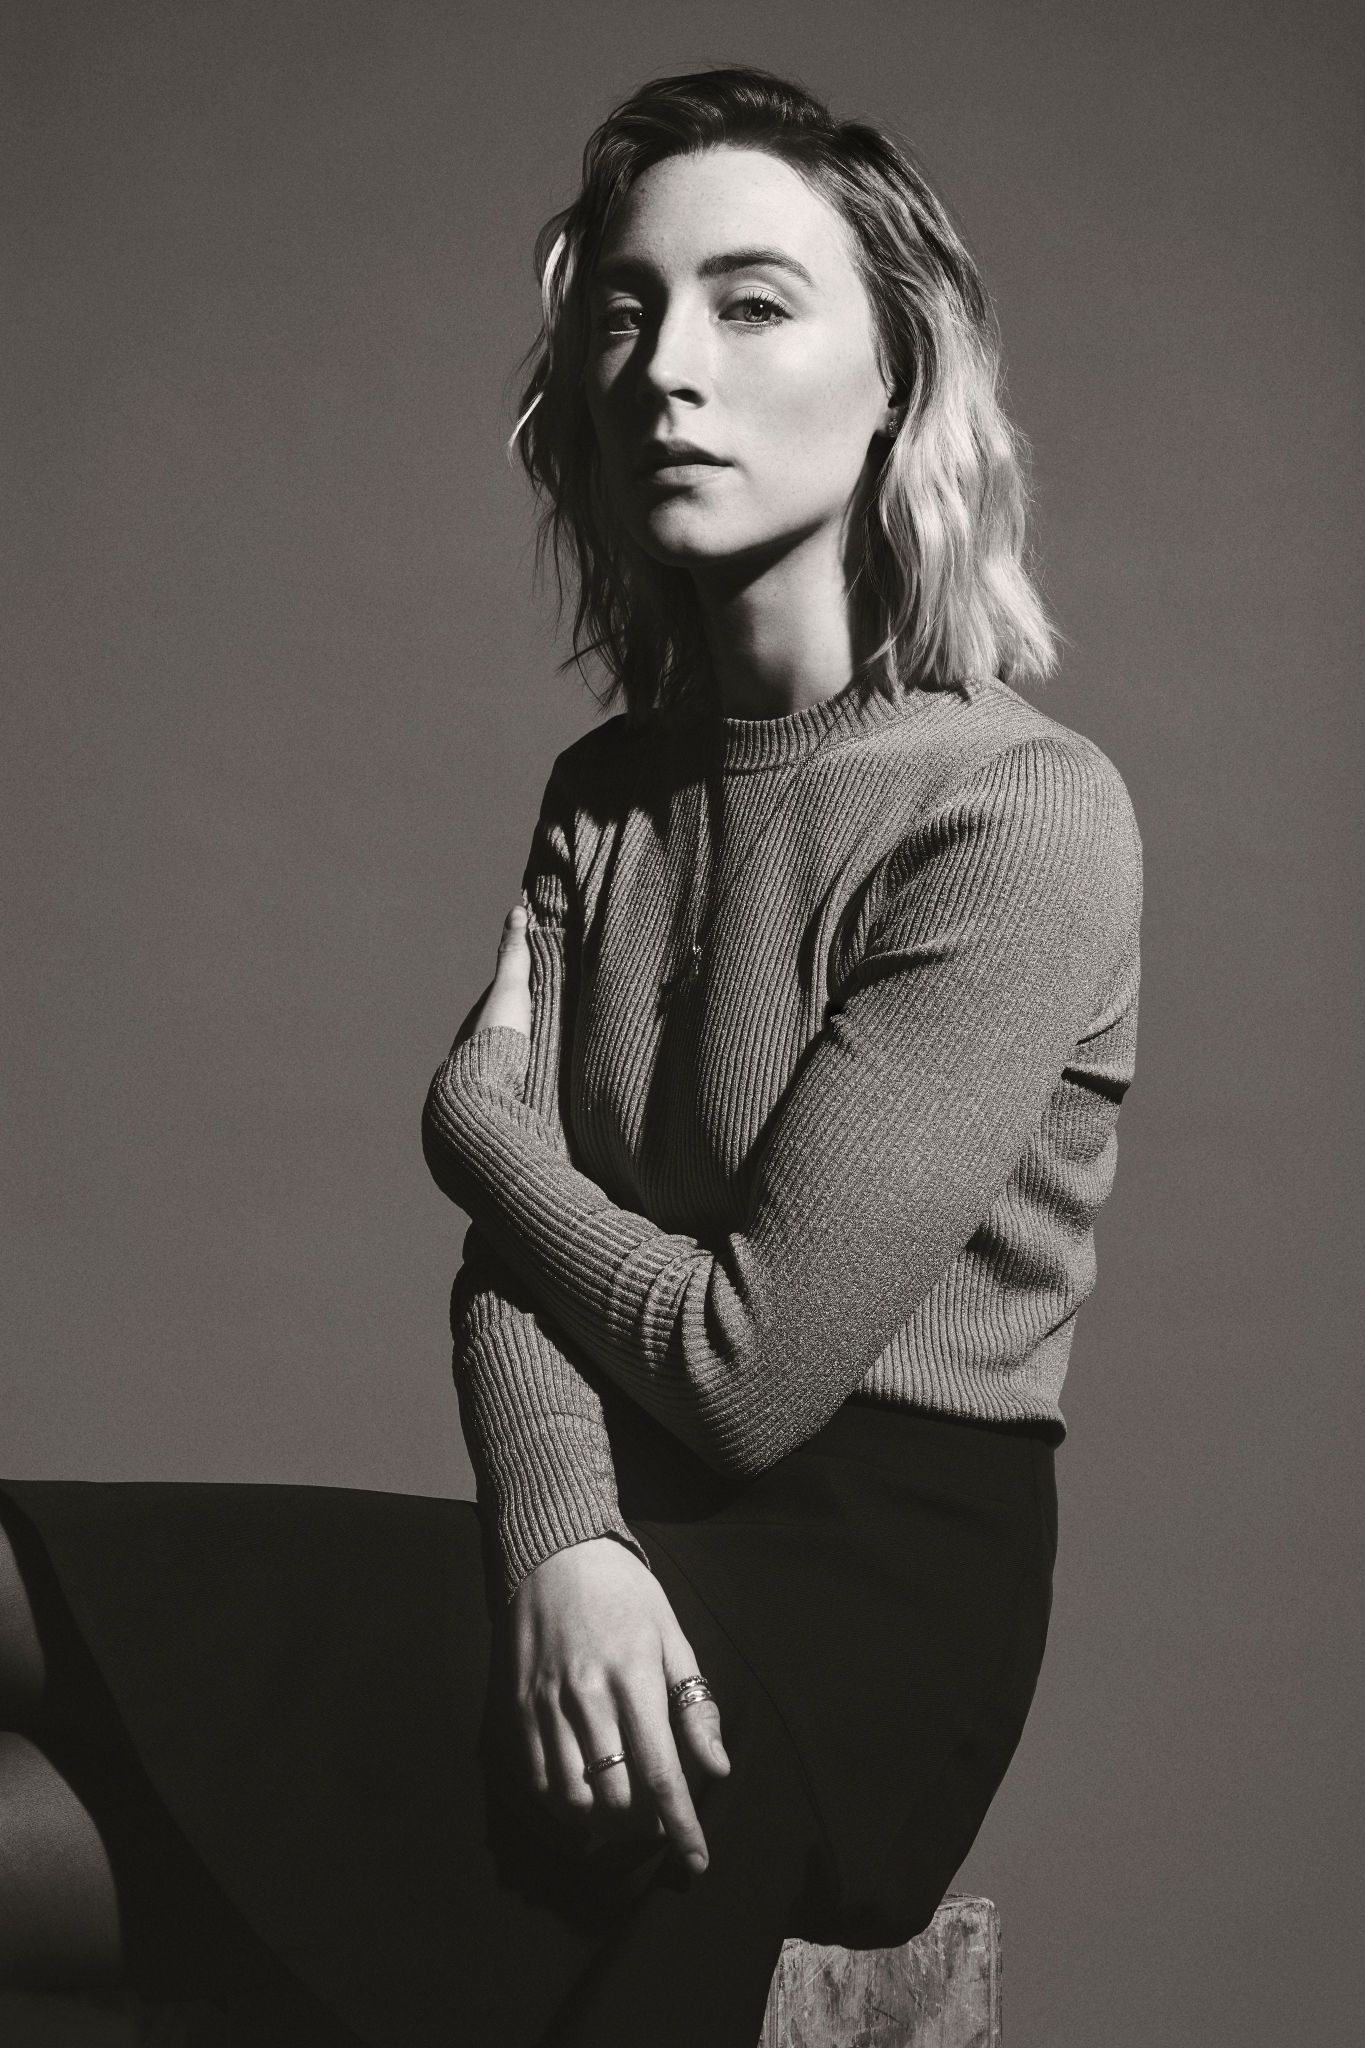 saoirses wall street journal portraits portrait actresses on wall st journal id=27982